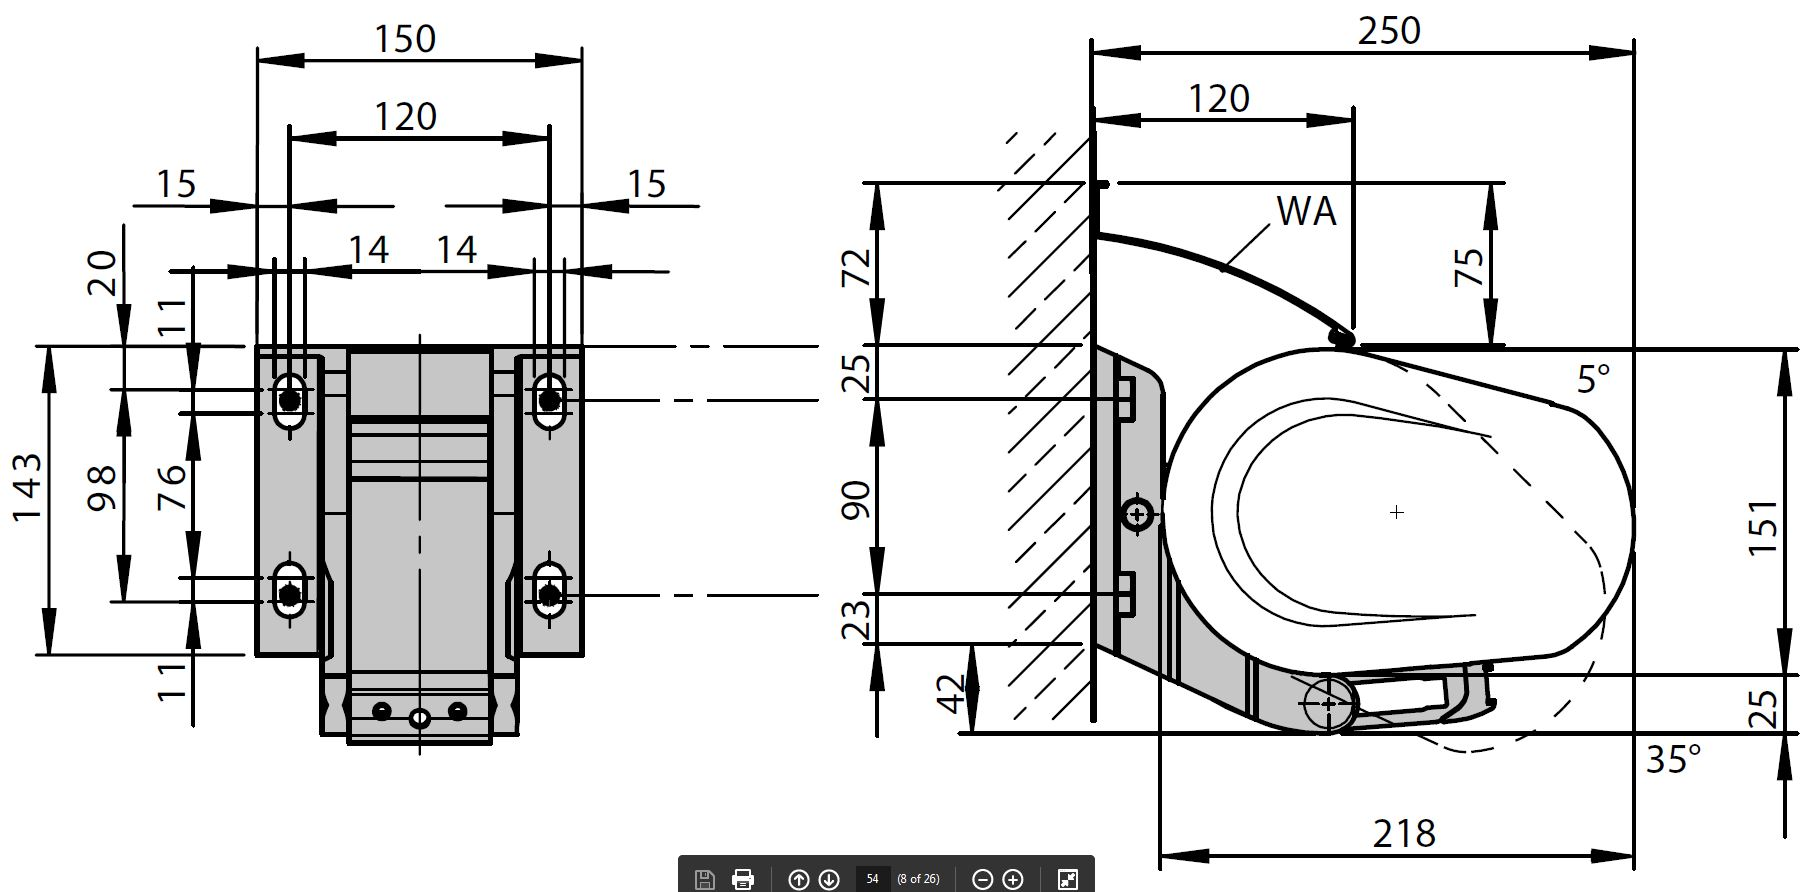 5010 awning dimensions and fixing points